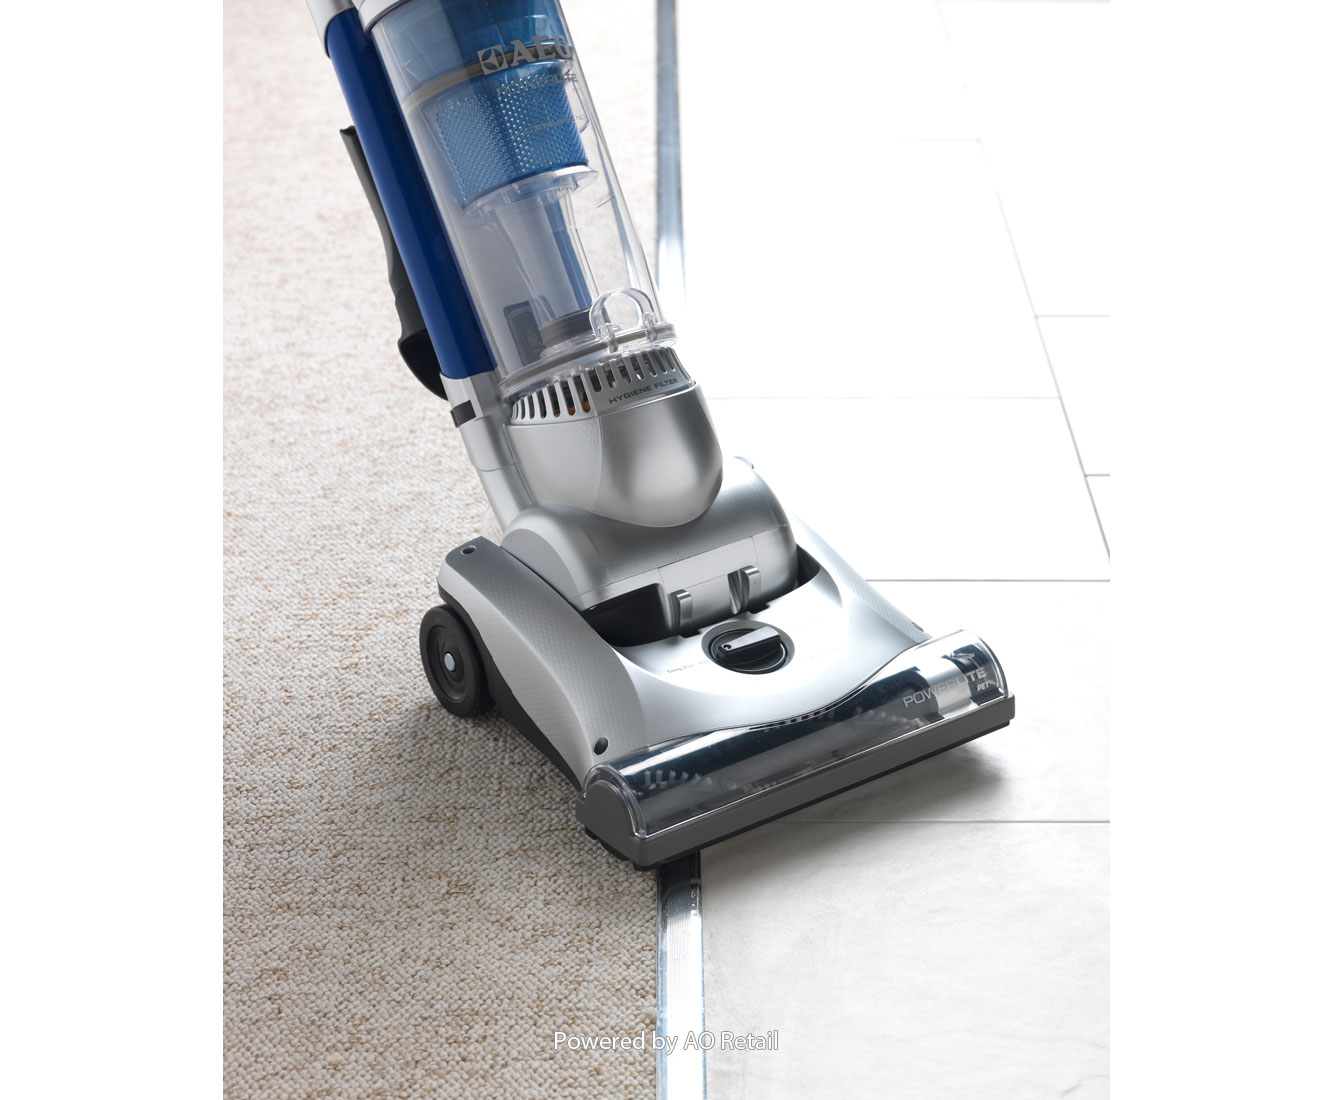 How Can I Look After My Vacuum Cleaner? Awesome Ideas